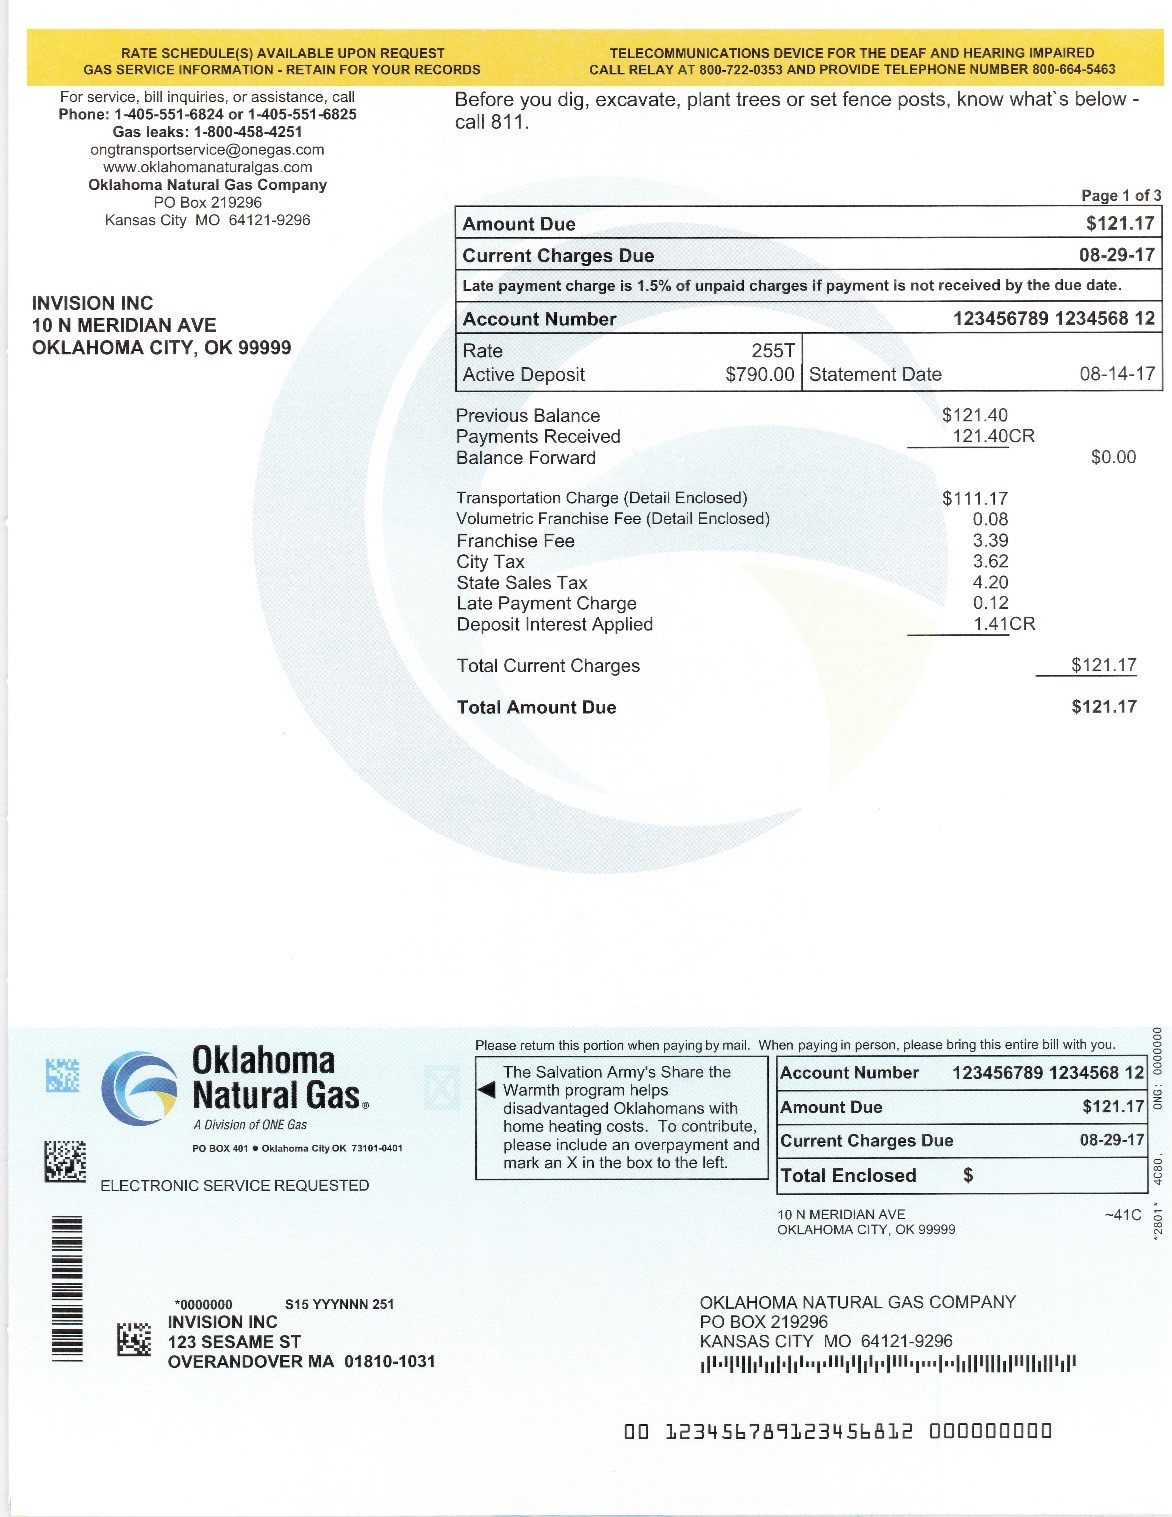 Oklahoma Natural Gas New Bill Design